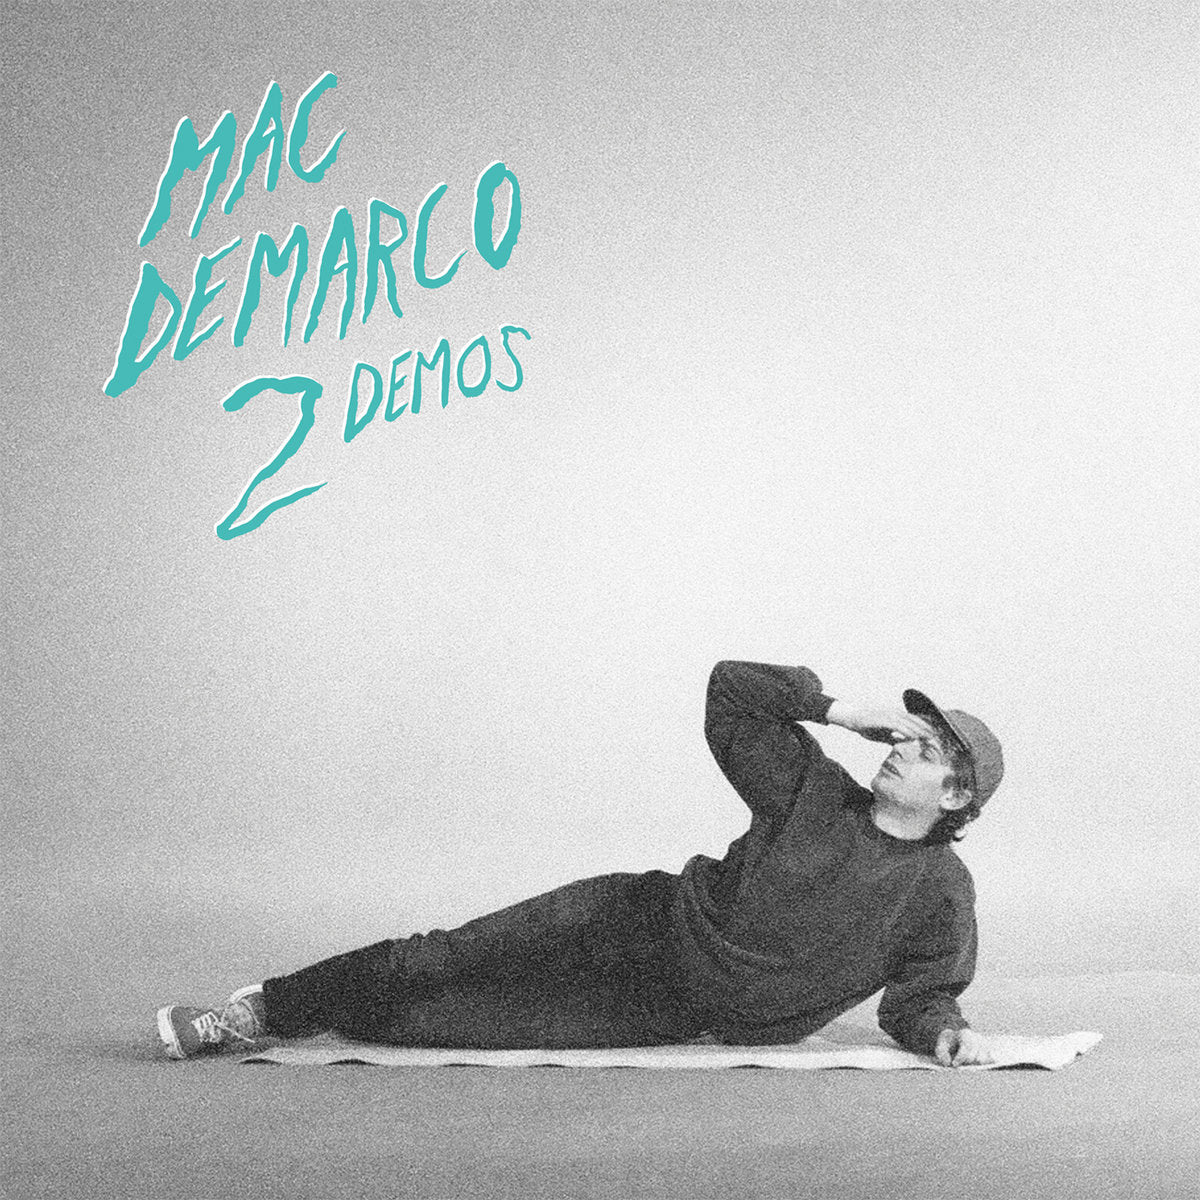 Mac DeMarco - 2 Demos LP (Green Vinyl Edition)